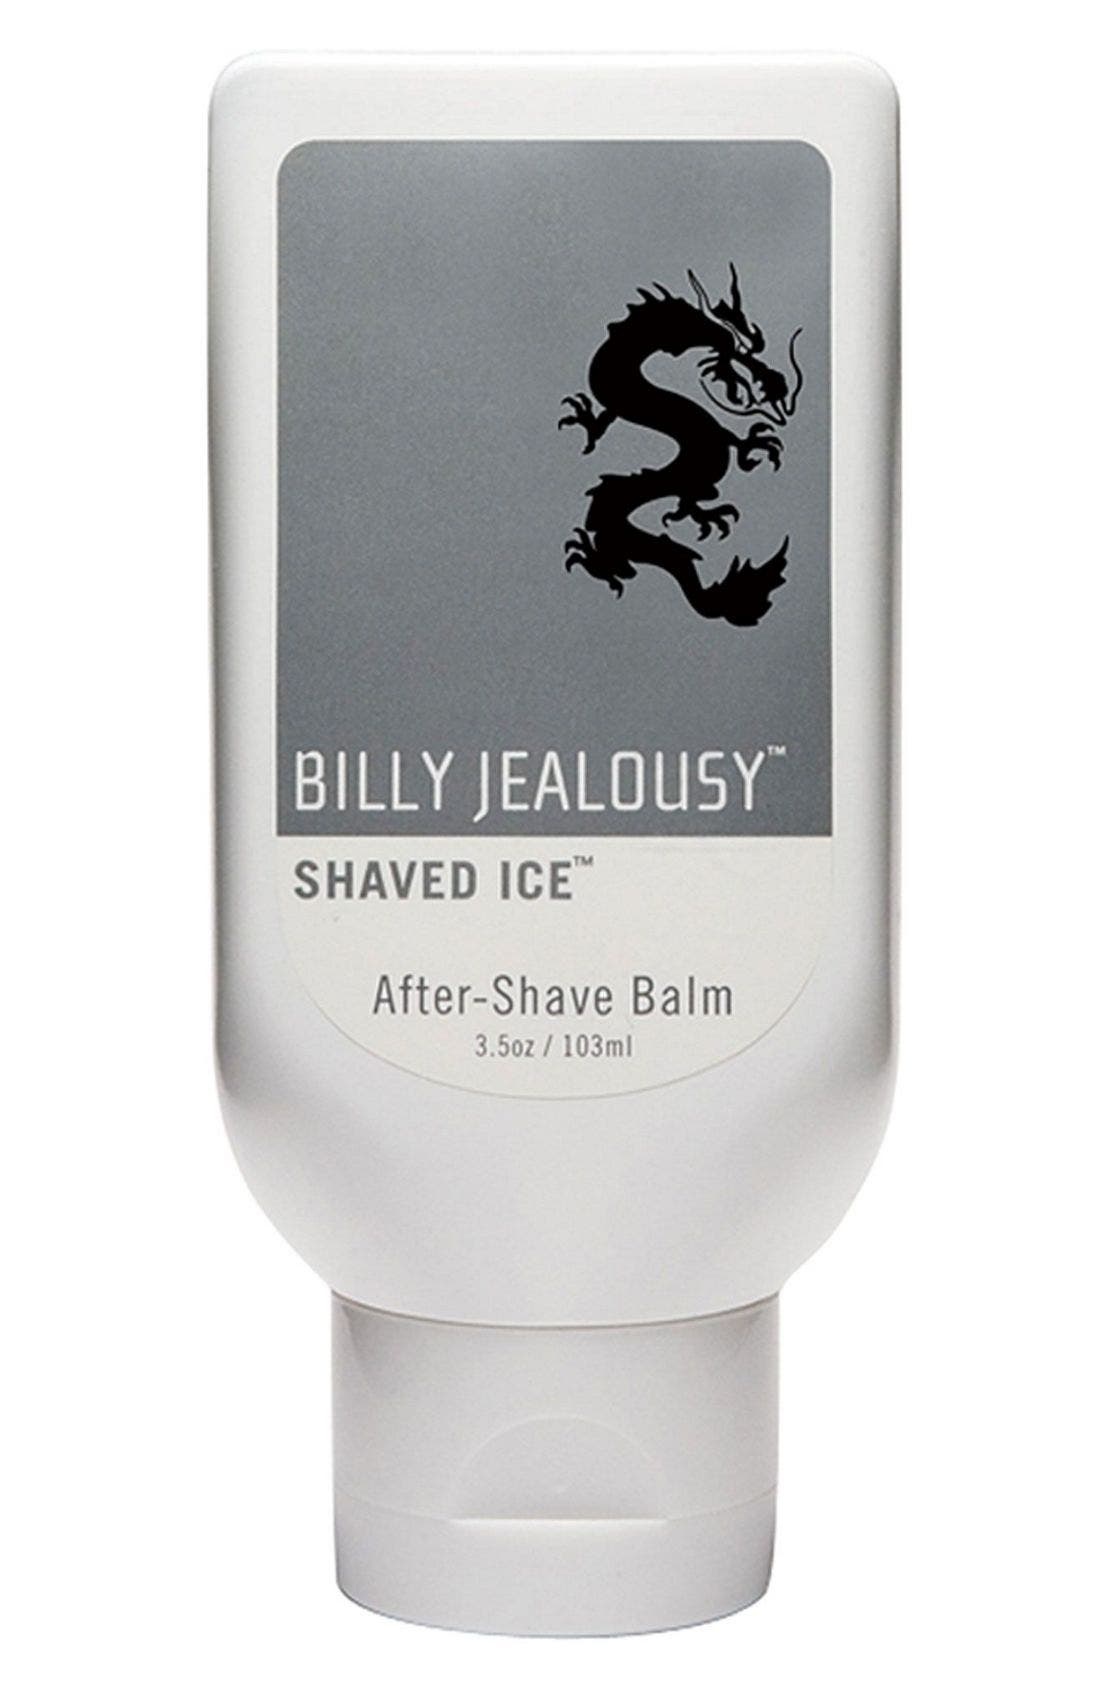 'Shaved Ice' After-Shave Balm,                             Main thumbnail 1, color,                             000